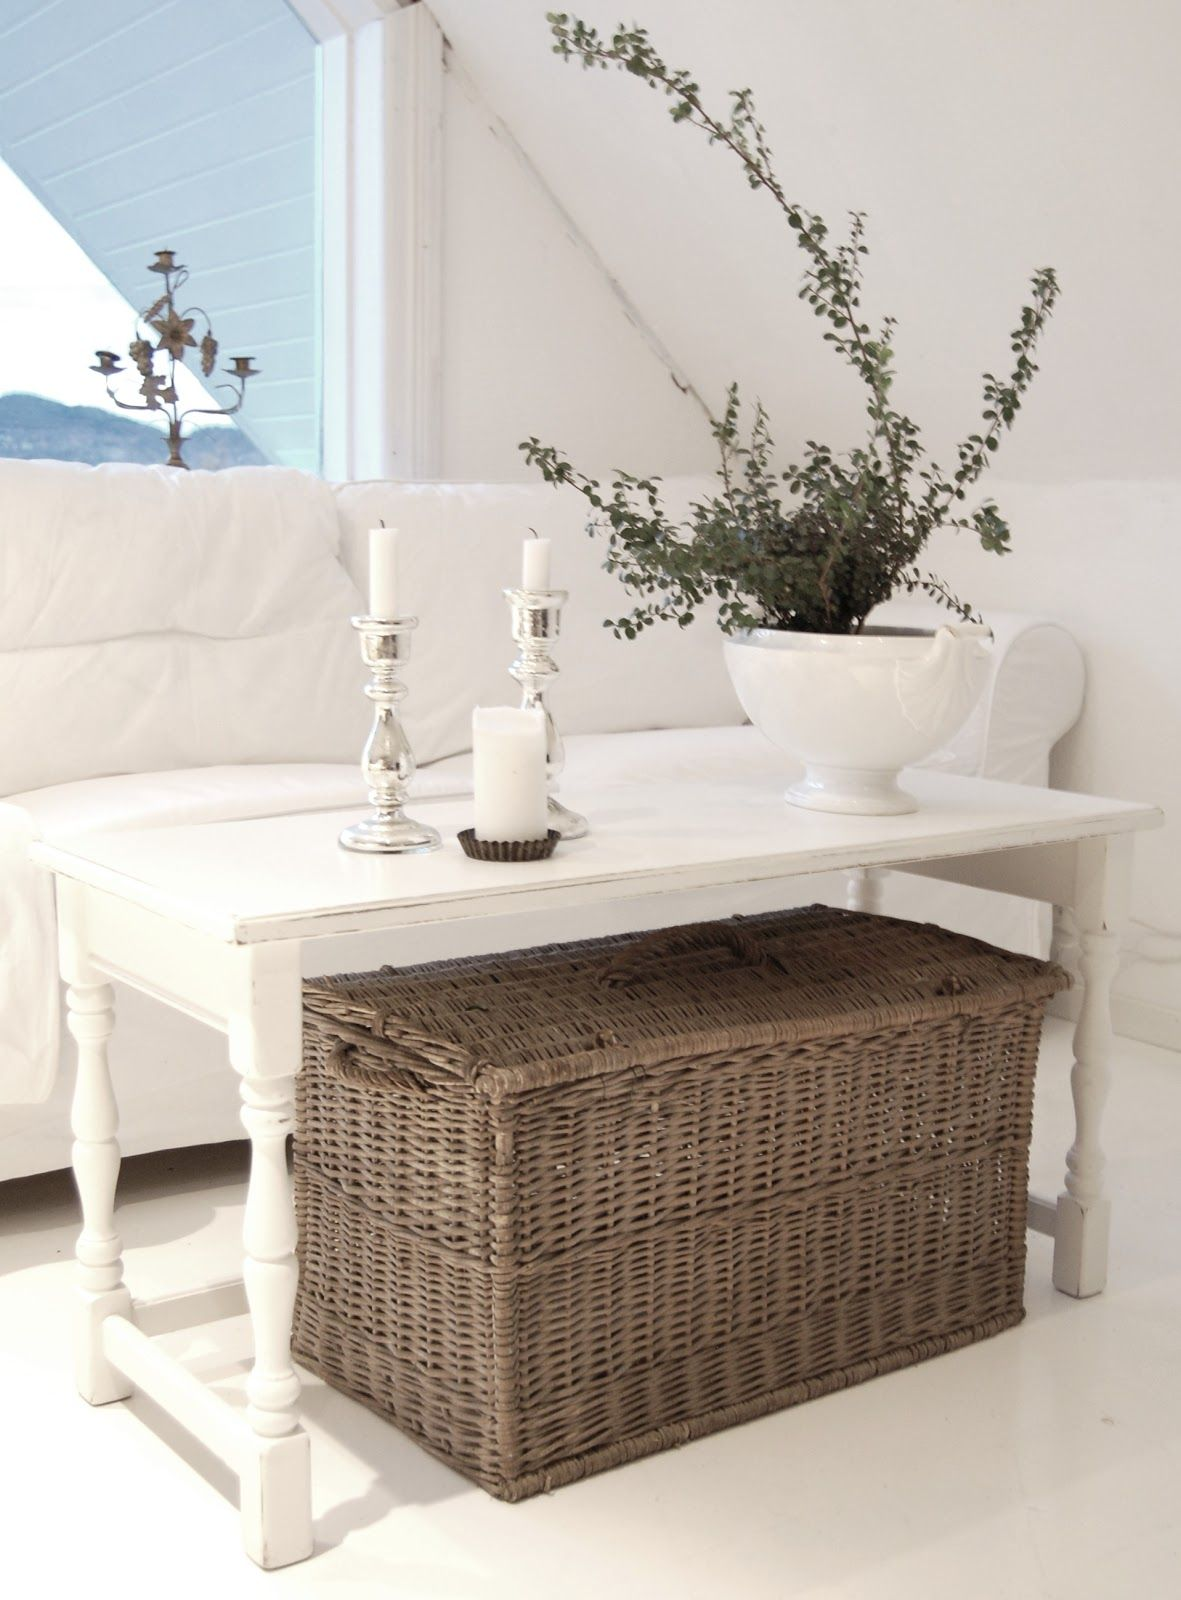 Basket Under An Open Coffee Table Coffee Table Home Decor